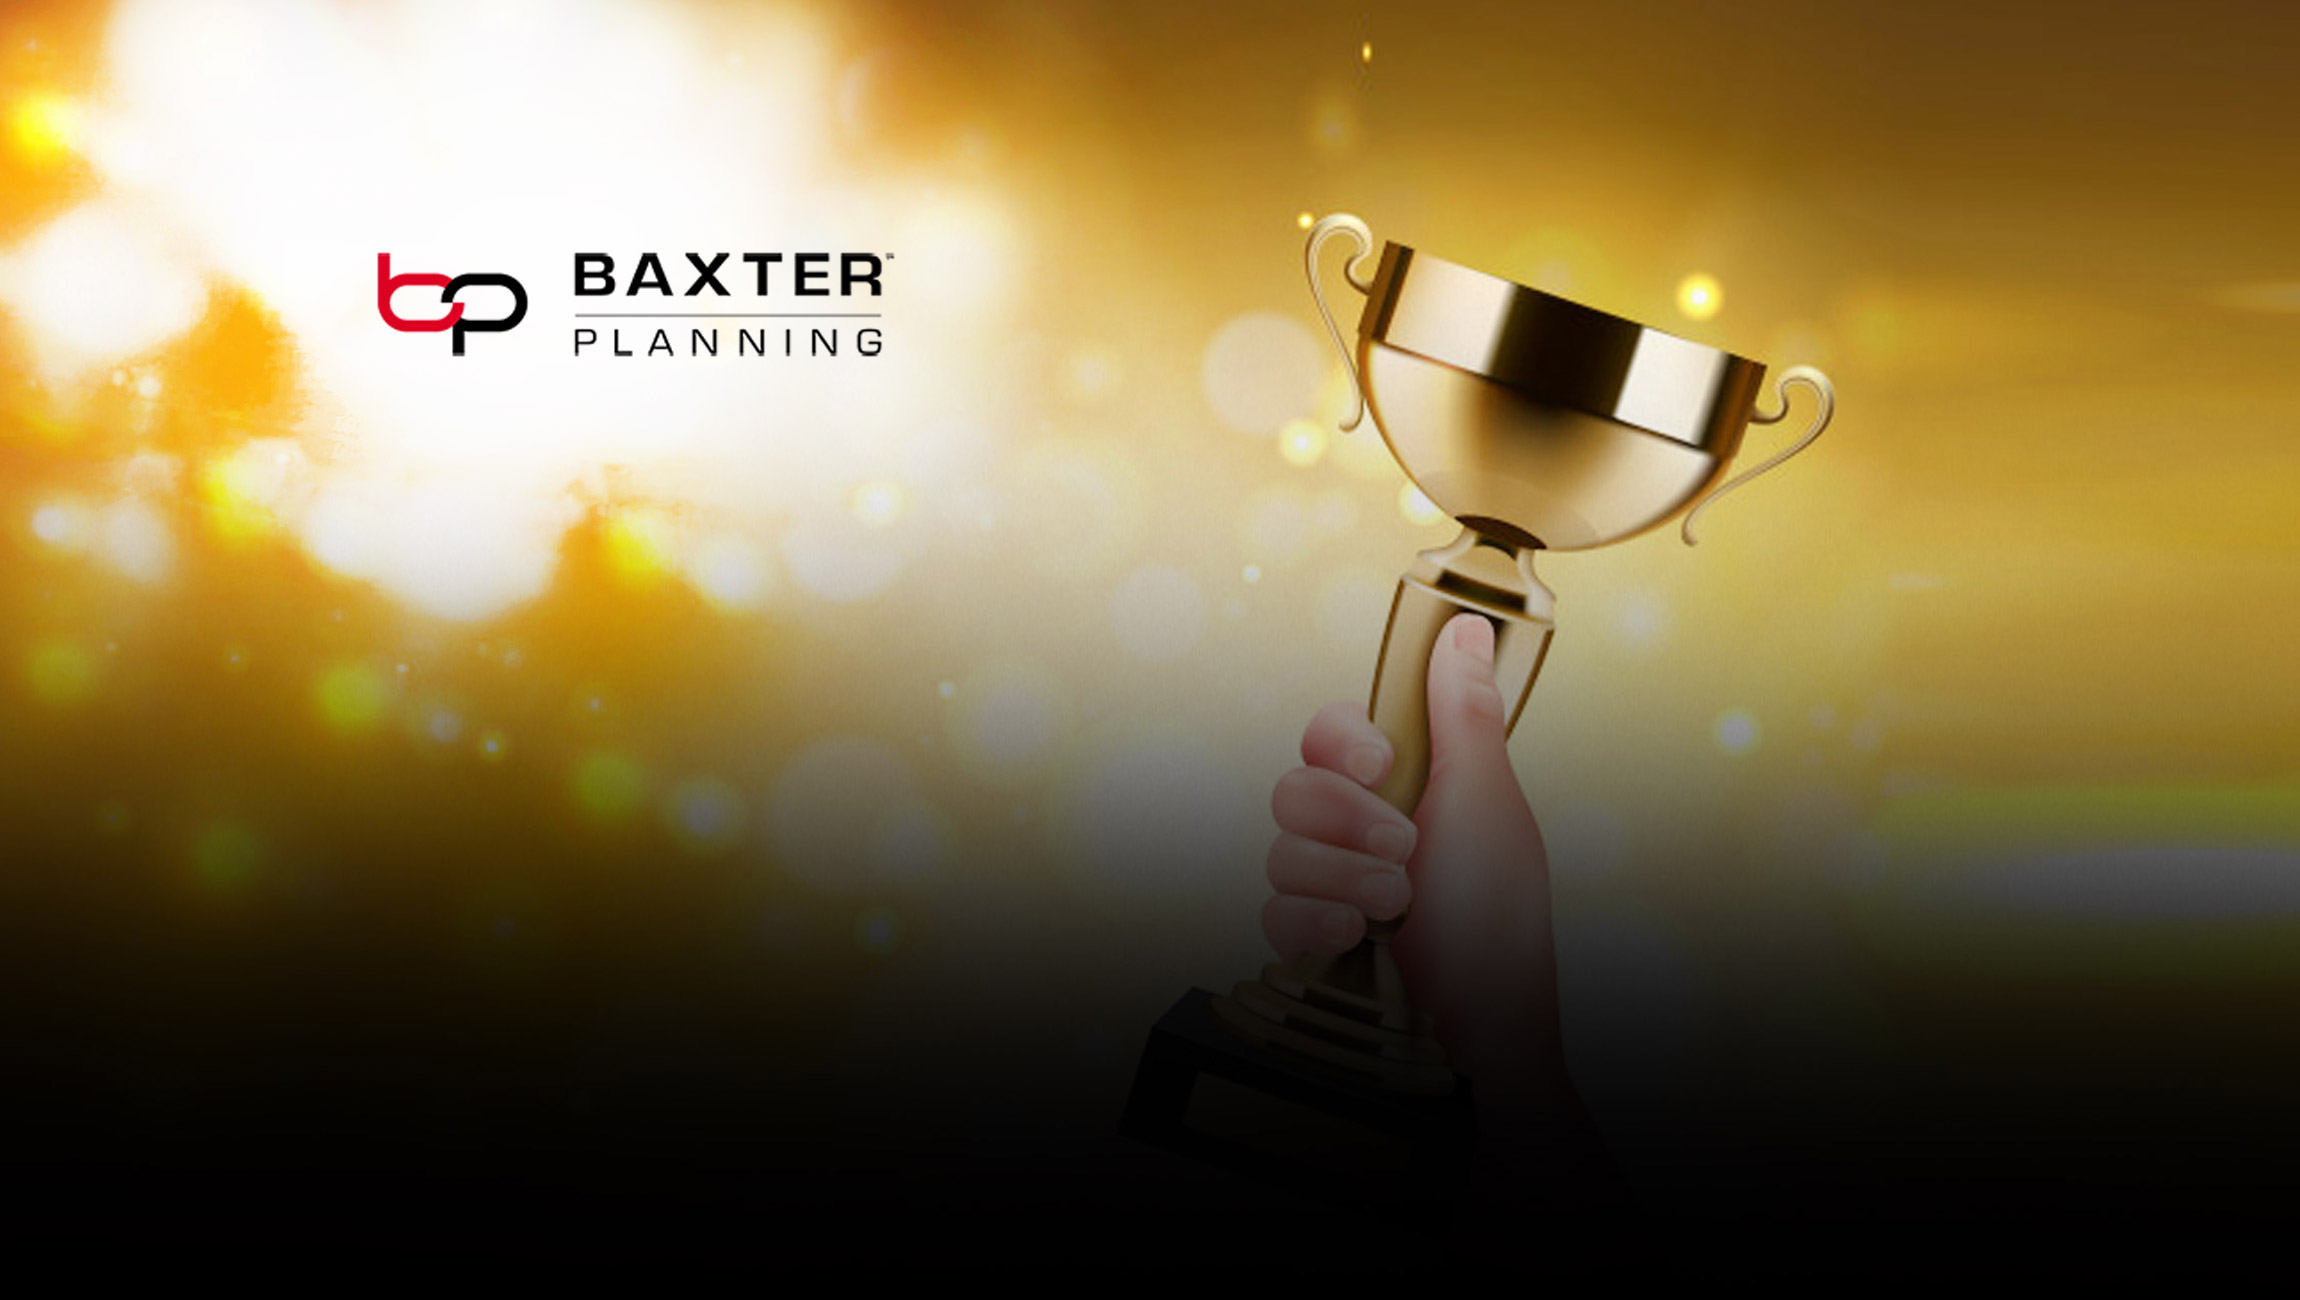 Baxter Planning recognizes winners of Supply & Demand Chain Executive's 2021 Women in Supply Chain Award